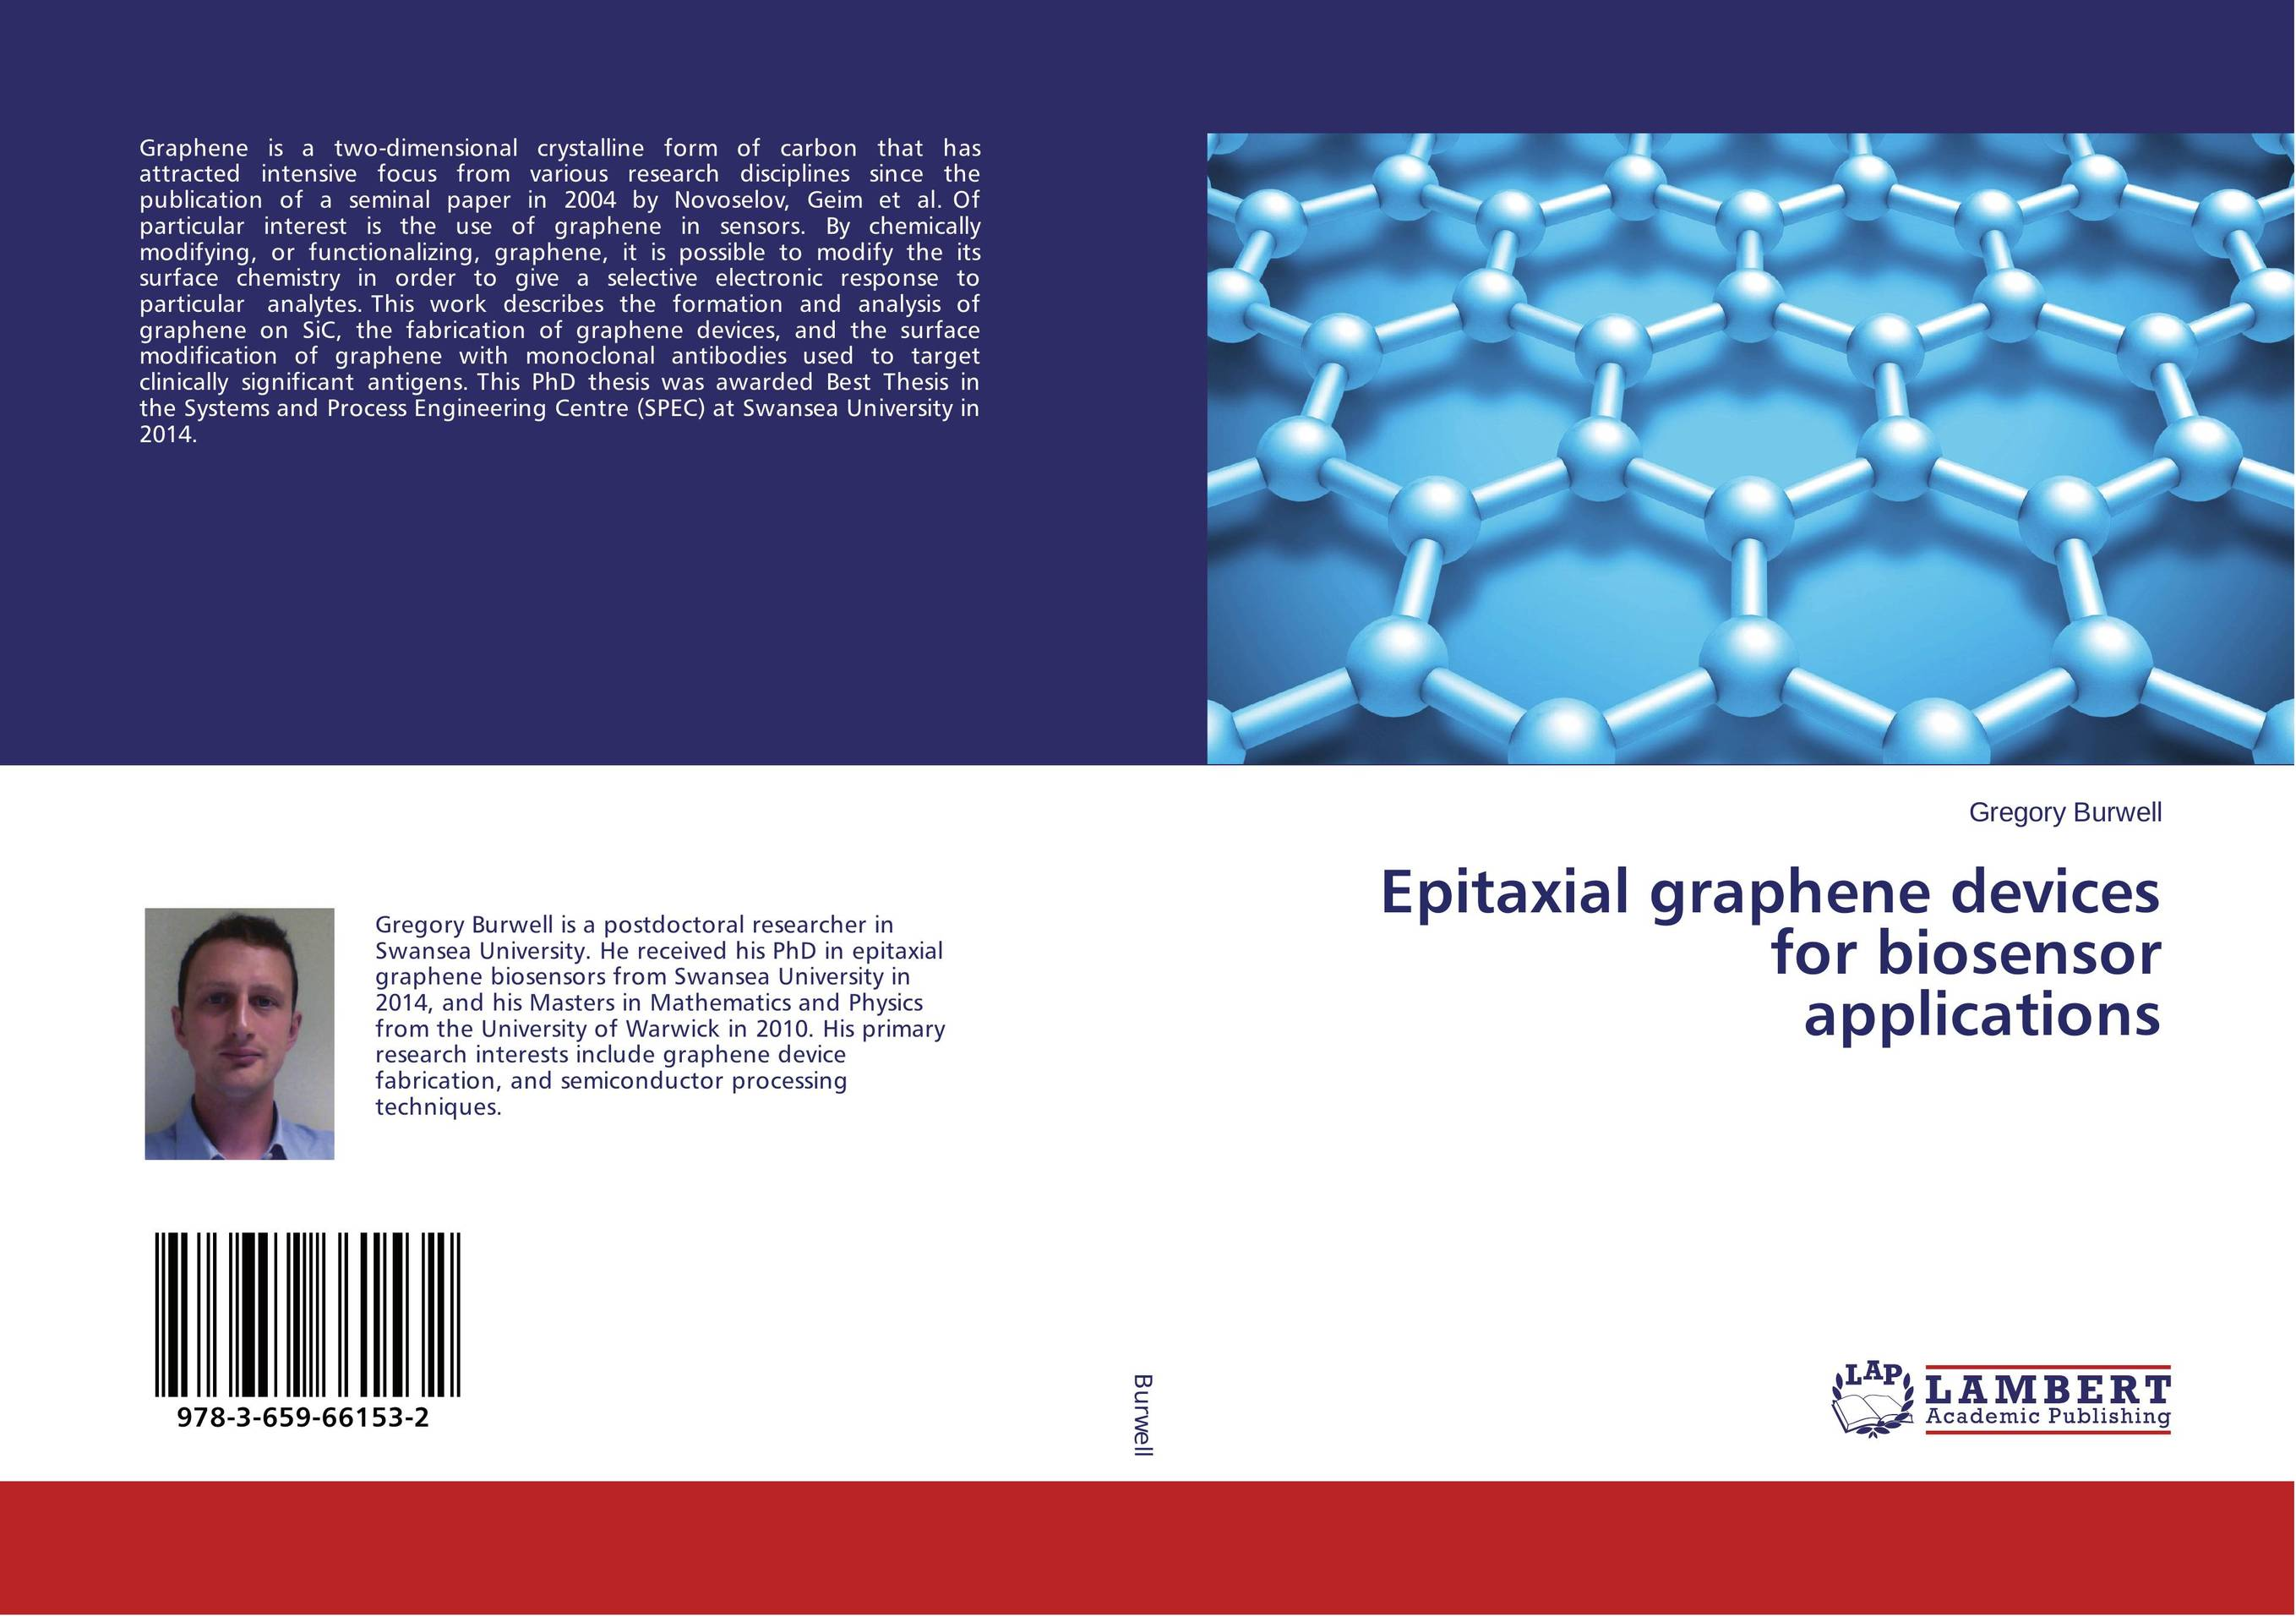 Epitaxial graphene devices for biosensor applications